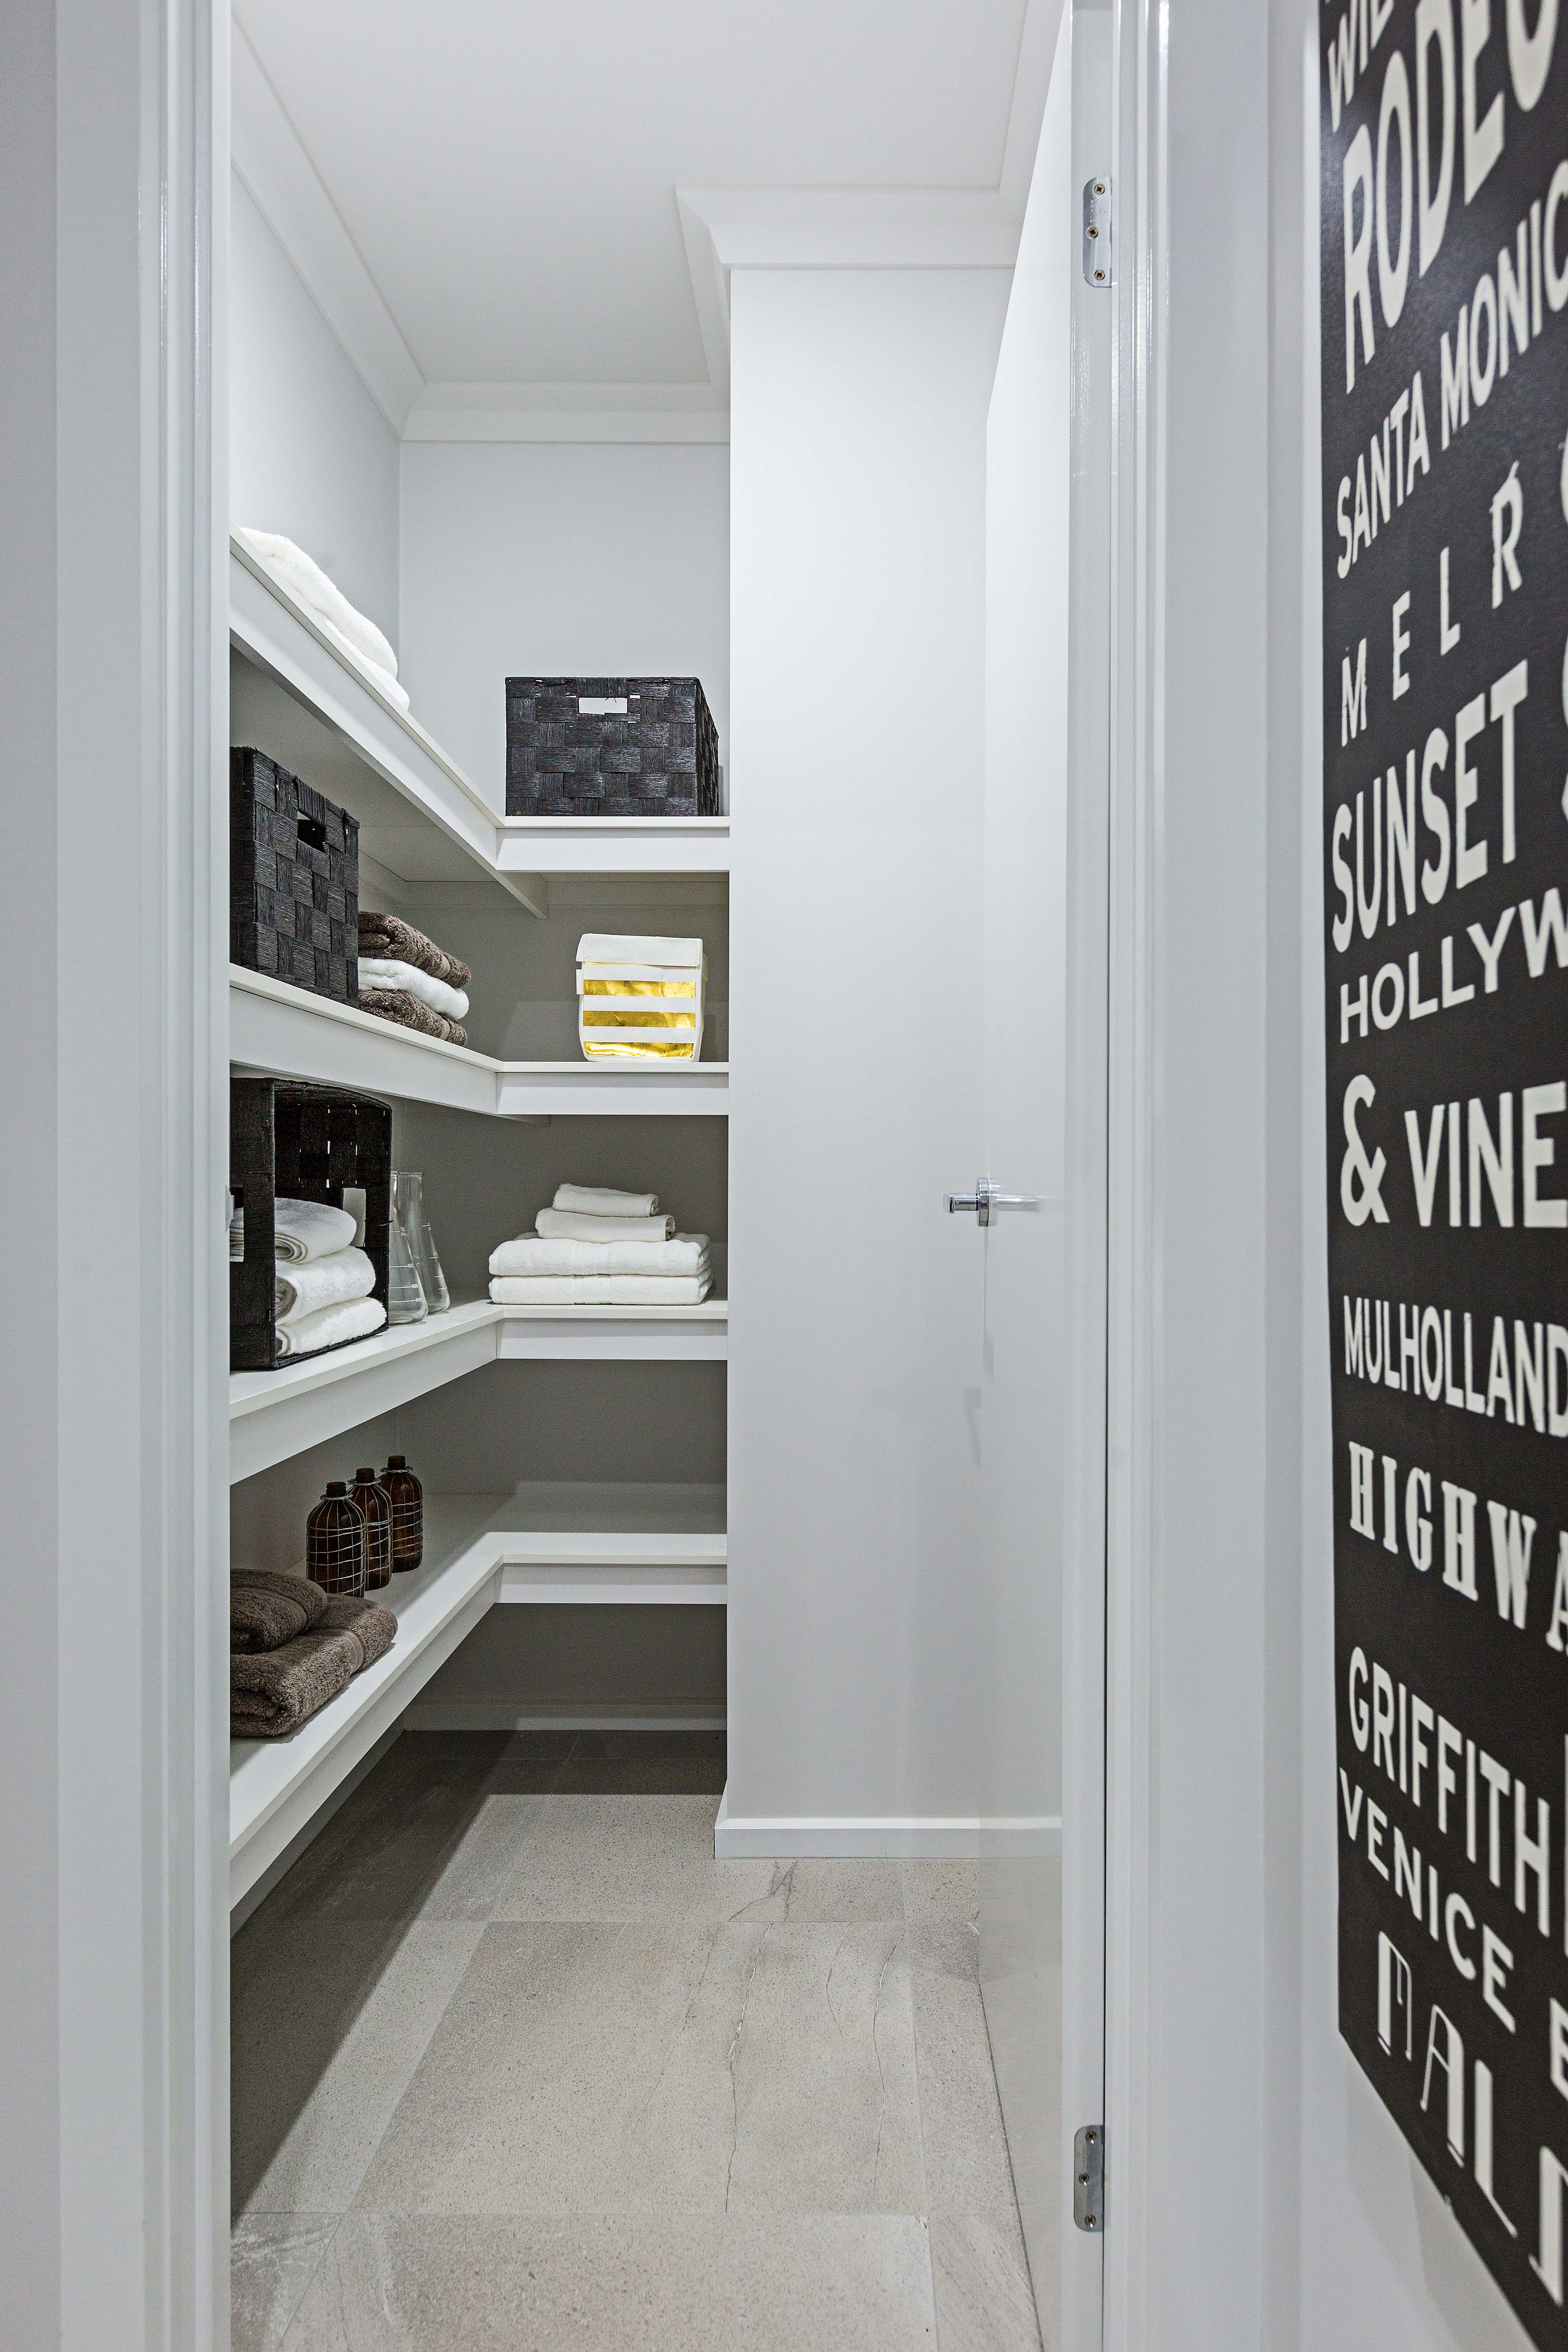 1 Make Four Piles The Great Closet Clean Out Is Your: How To Downsize Storage For Your Dream Home